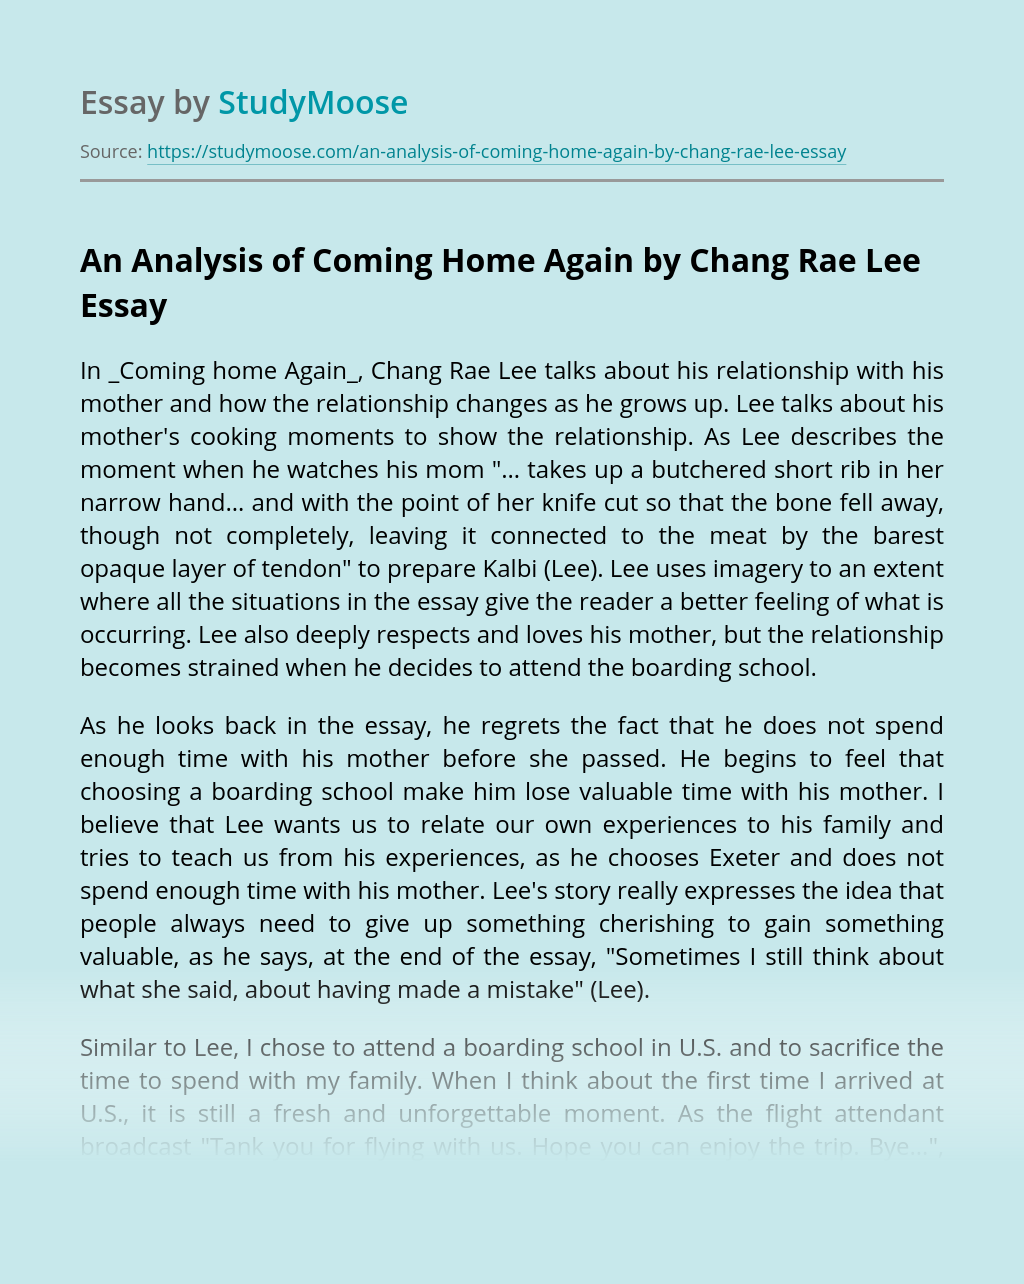 An Analysis of Coming Home Again by Chang Rae Lee